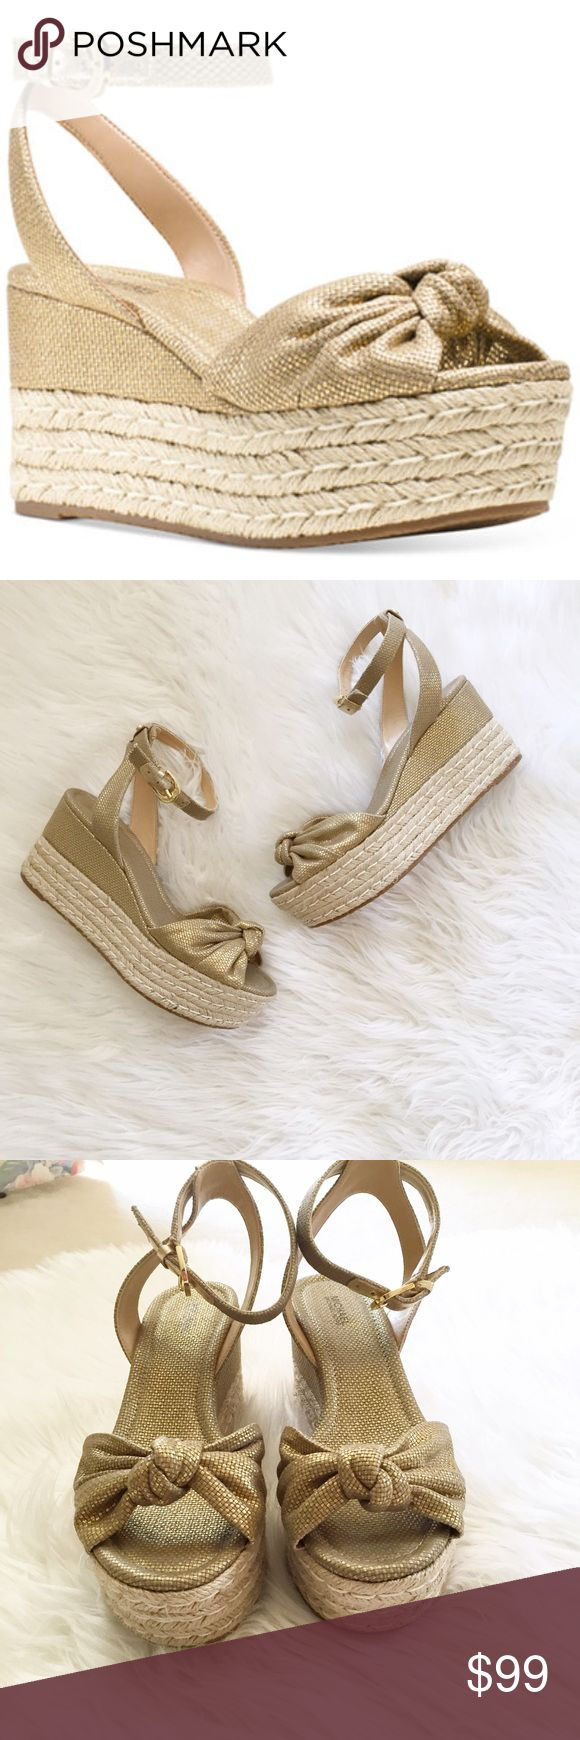 FLASH SALE⚡️NWOT Michael Kors Metallic Wedges Gorgeous NWOT Michael Kors metallic espadrilles wedges with a bow detailing. So cute! These would look adorable with skinny jeans. 29fcdsc MICHAEL Michael Kors Shoes Wedges